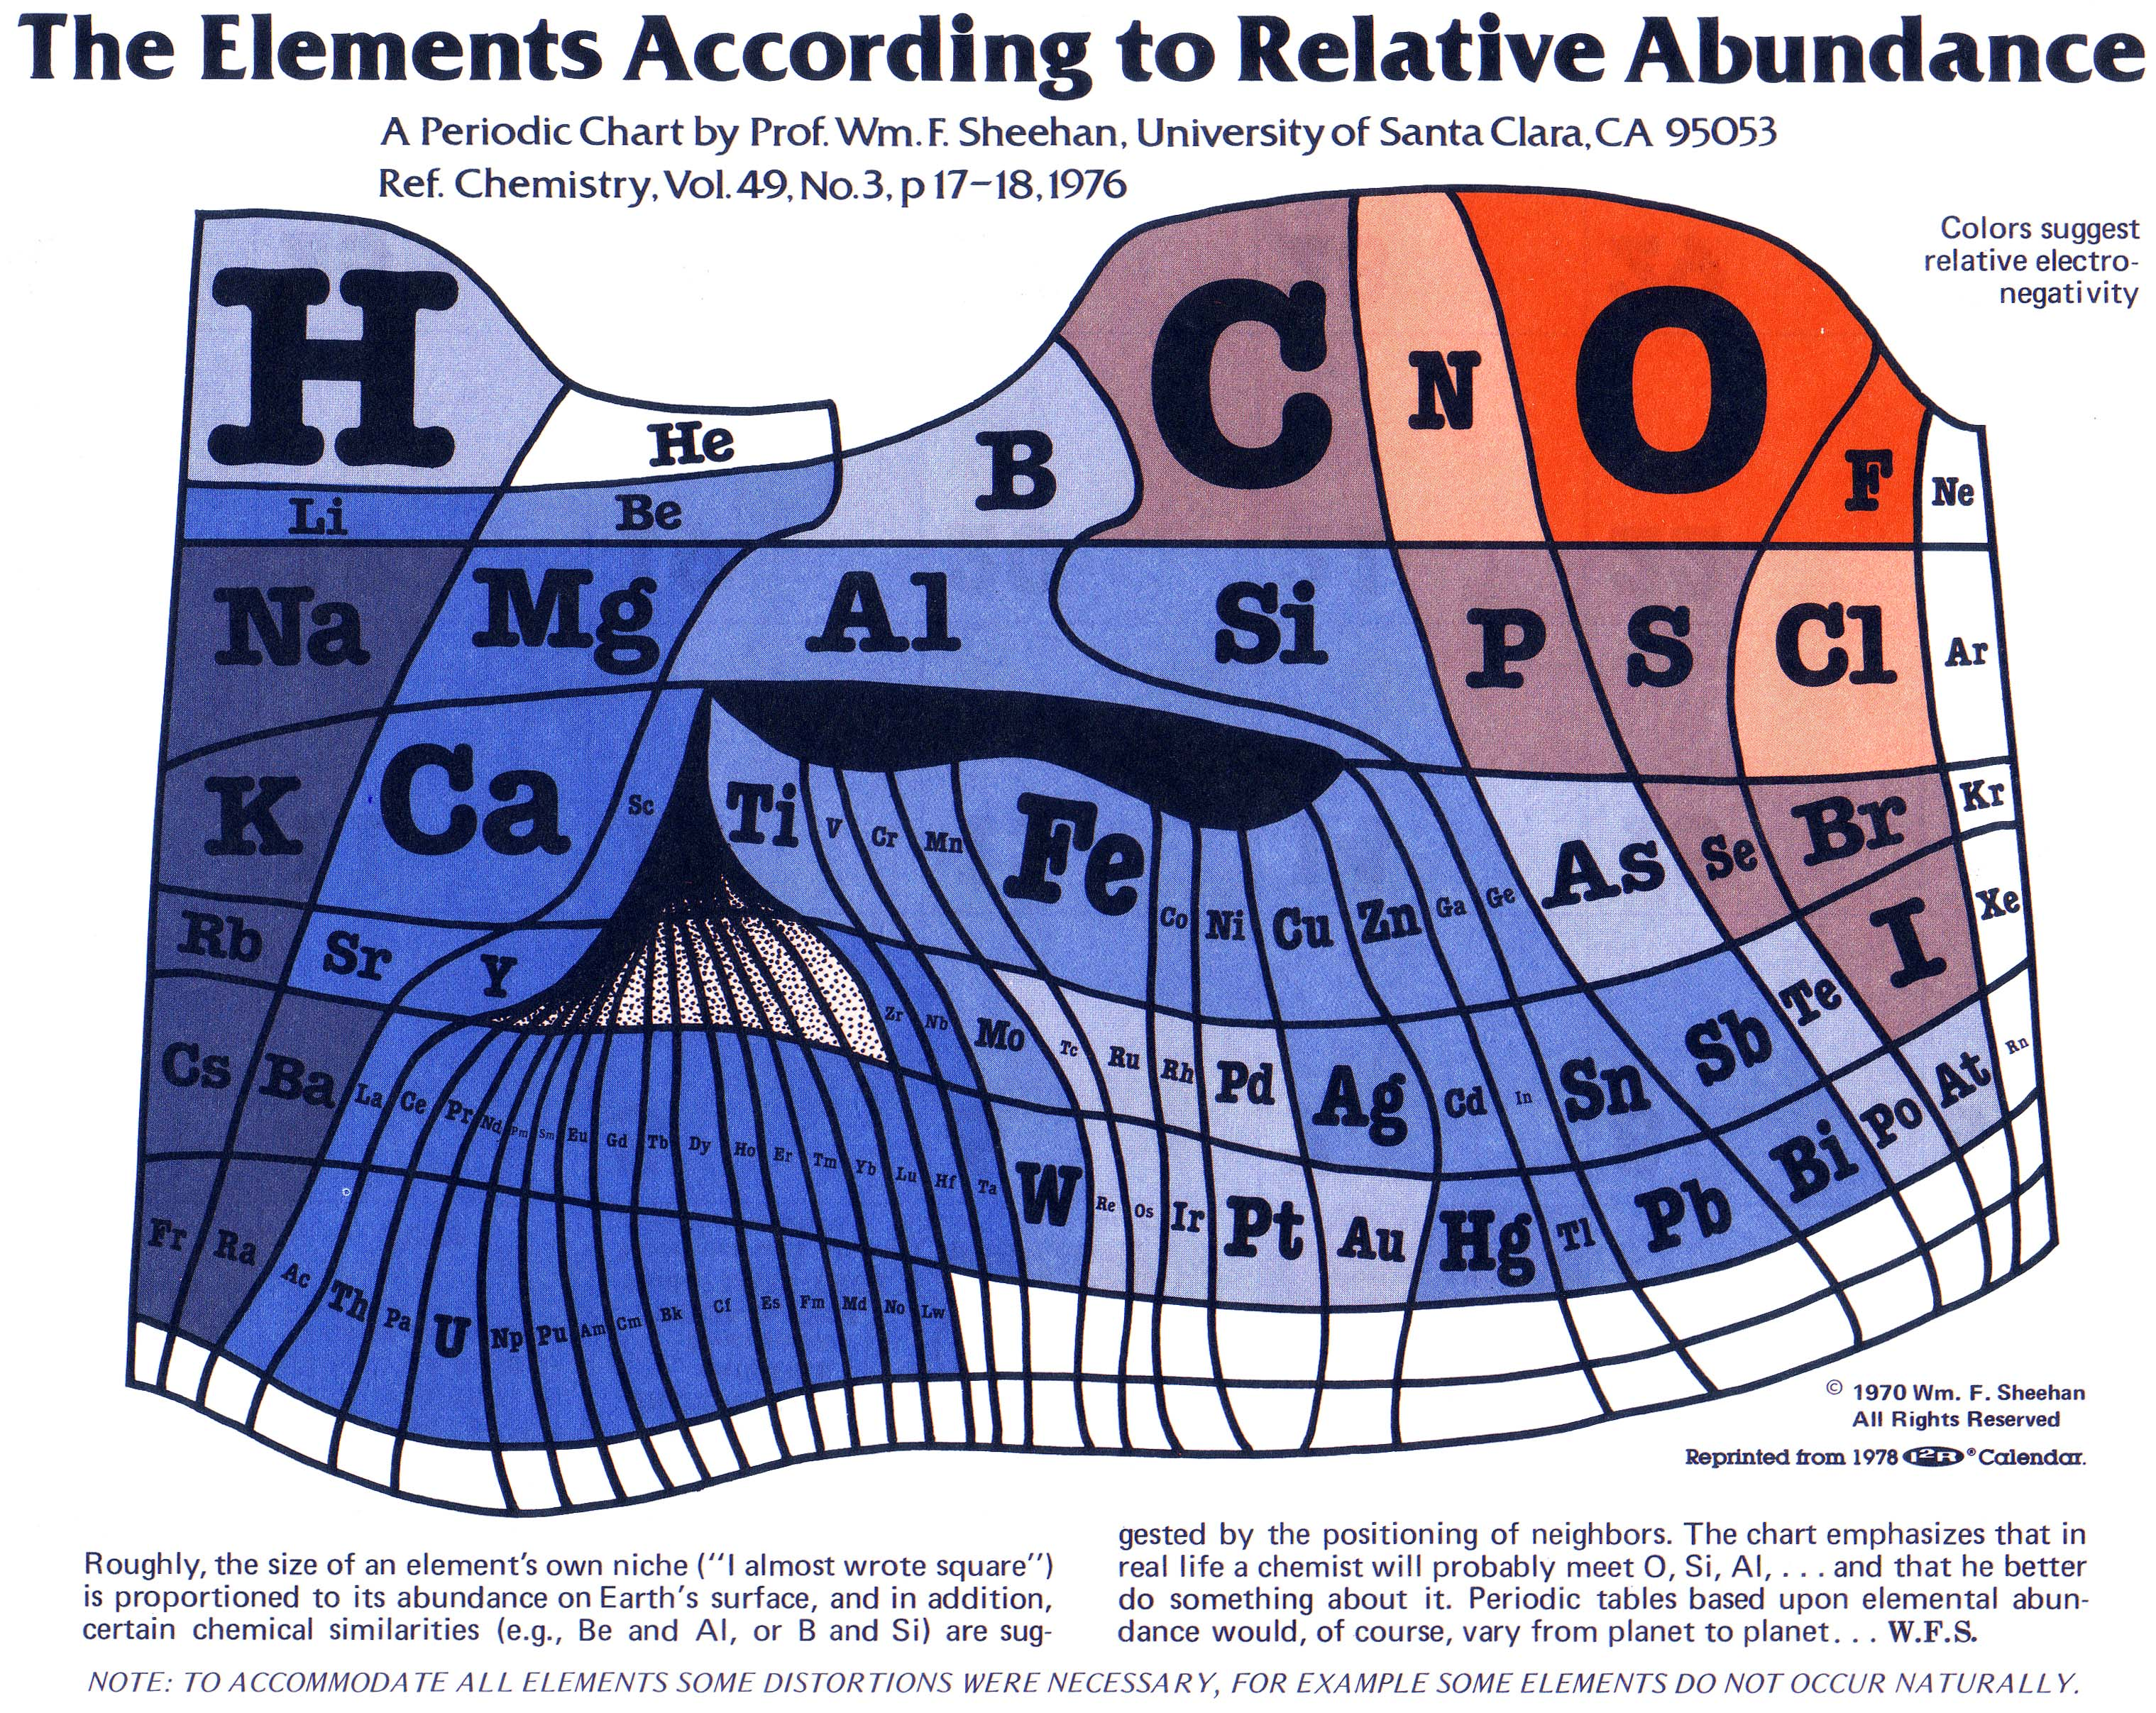 This periodic table from the 70s shows how much of each element there is